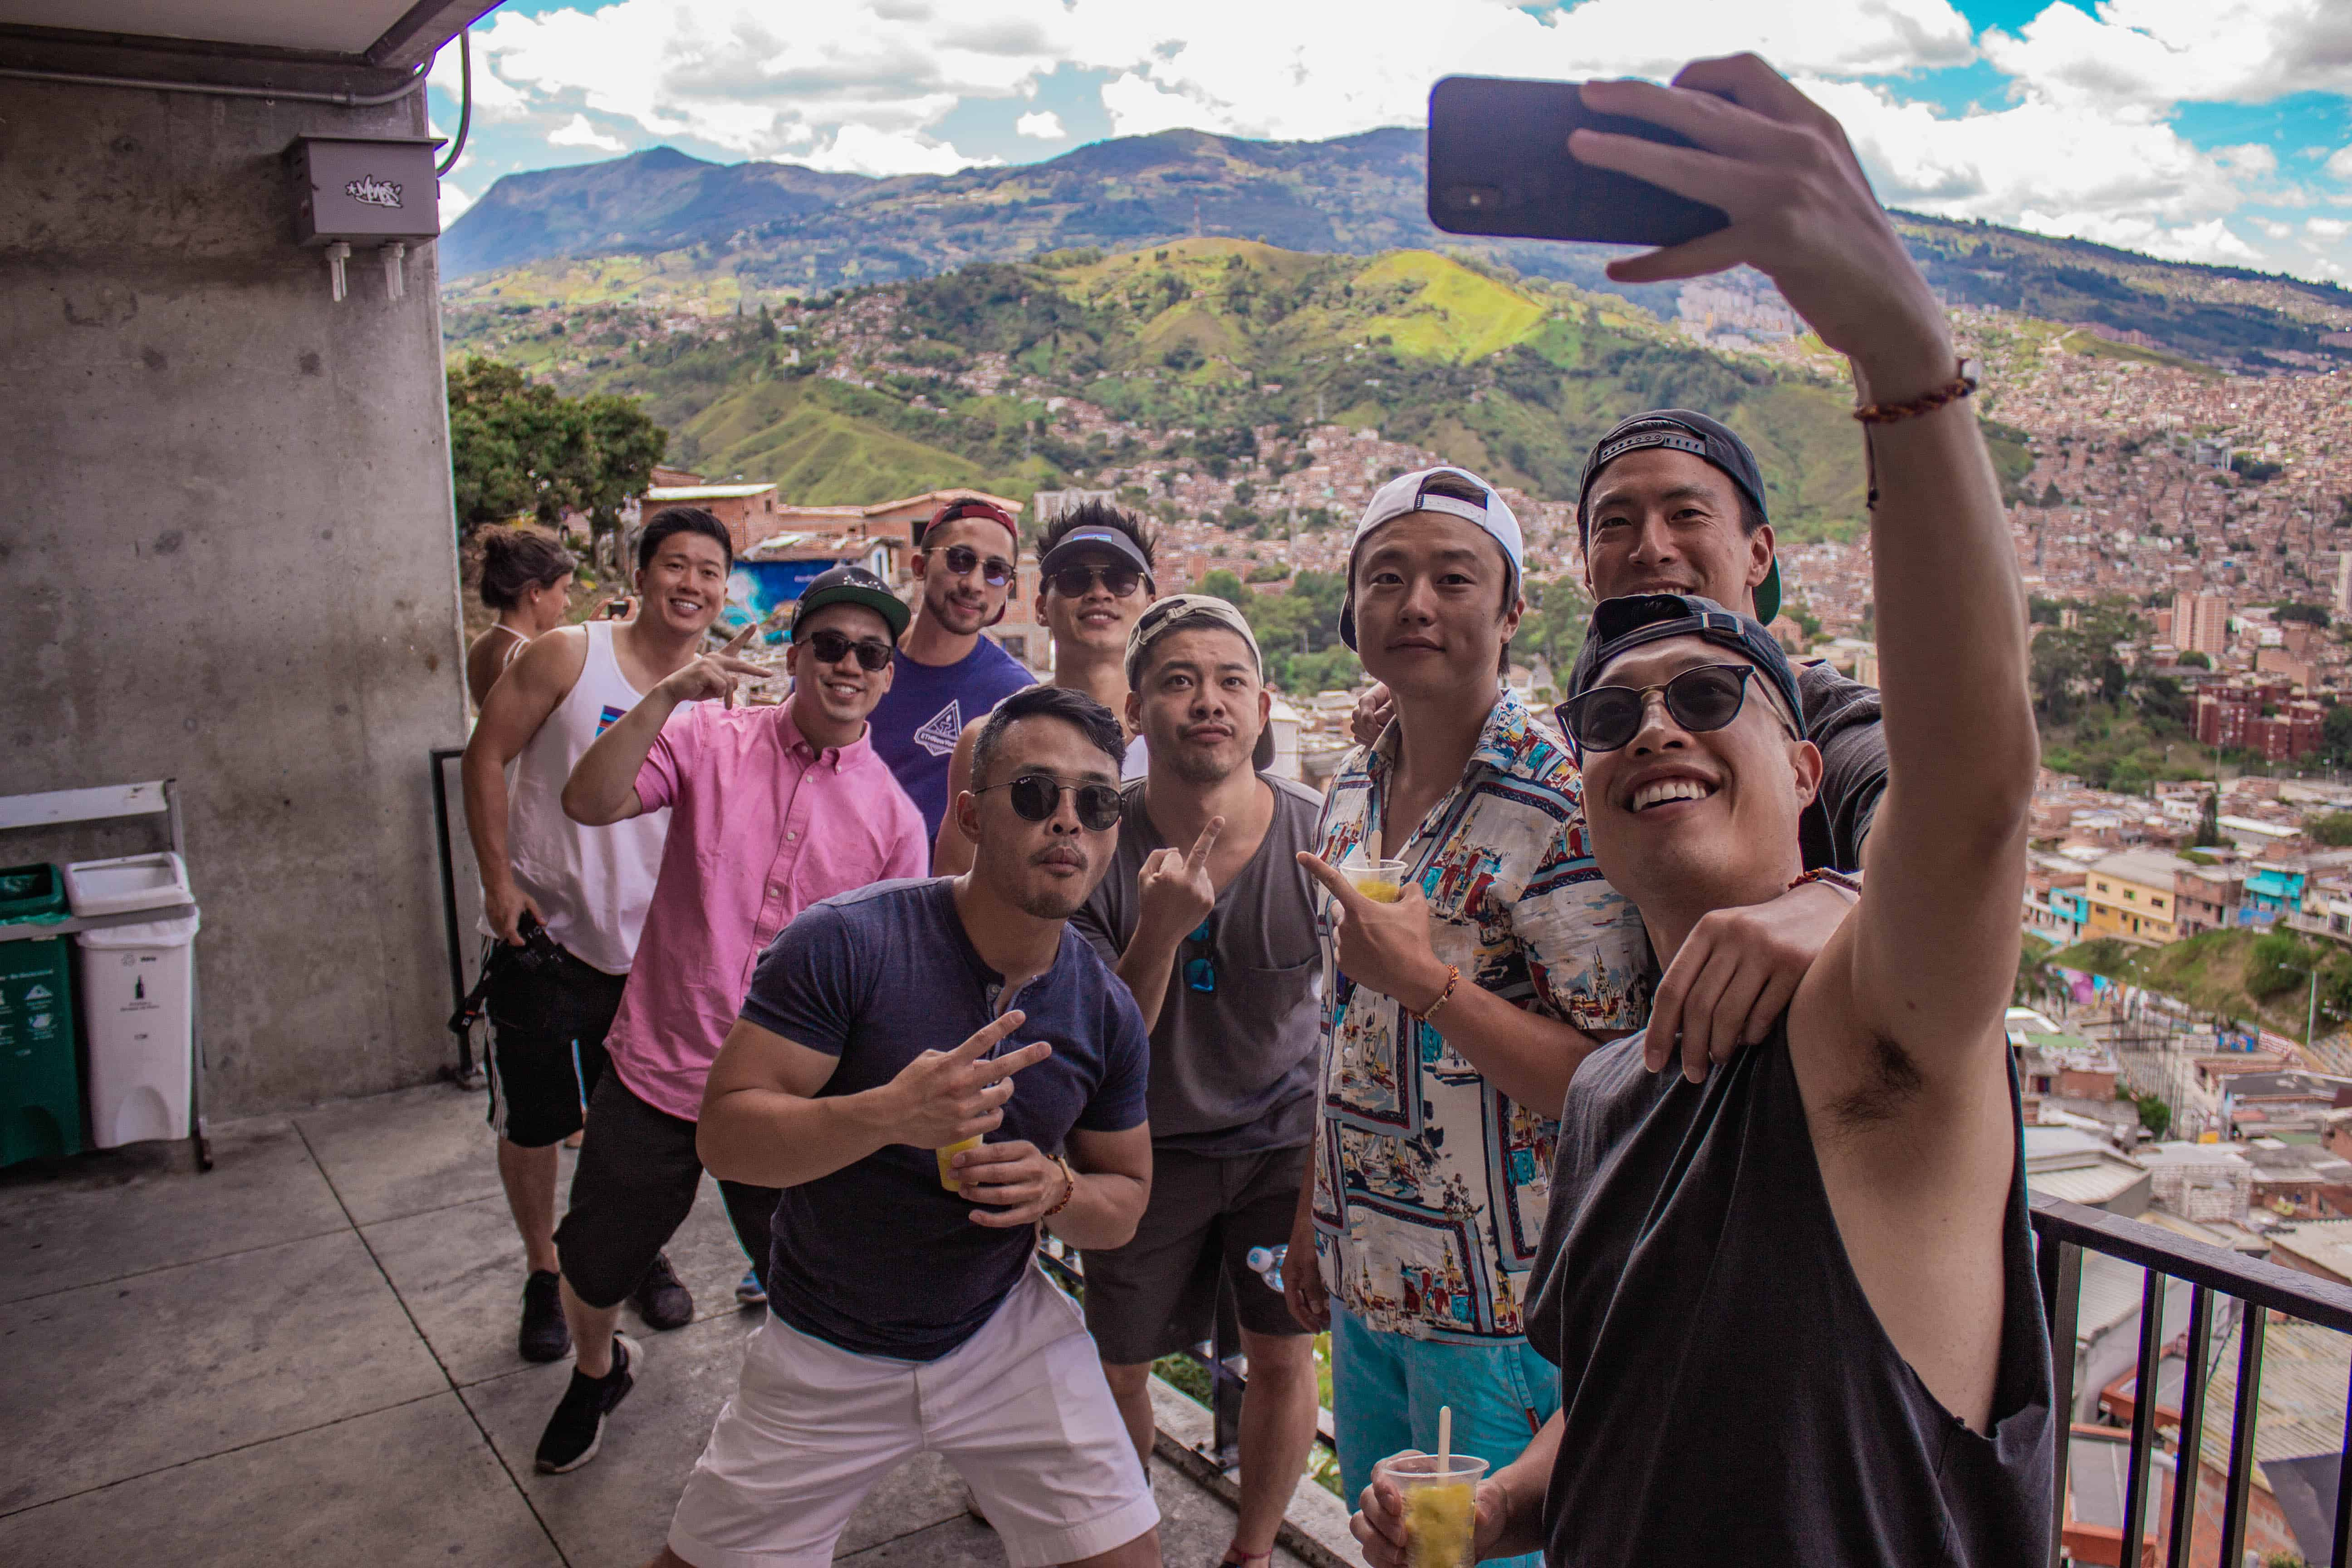 Top 2 Biggest Myths About Medellin, Colombia